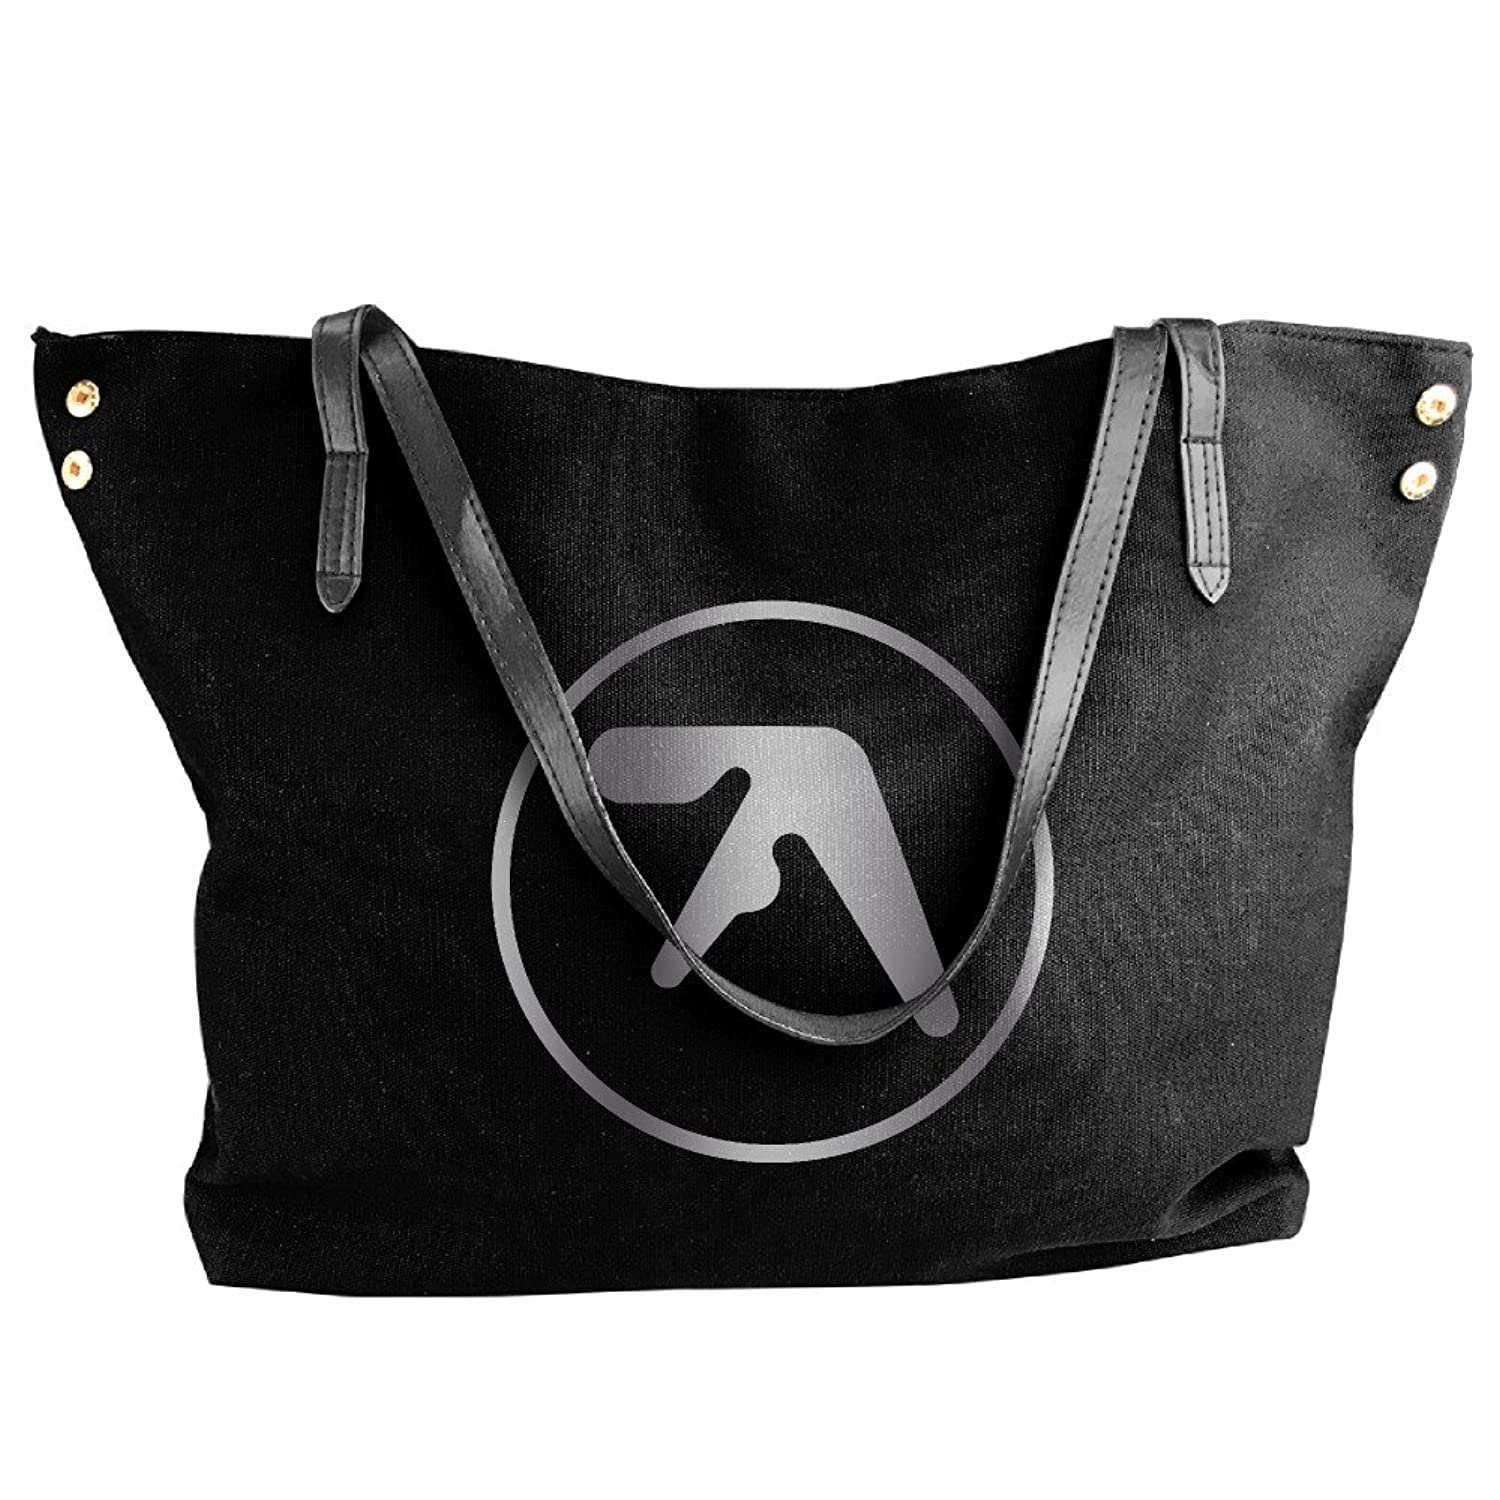 Aphex Twin Platinum Logo Handbag Shoulder Bag For Women